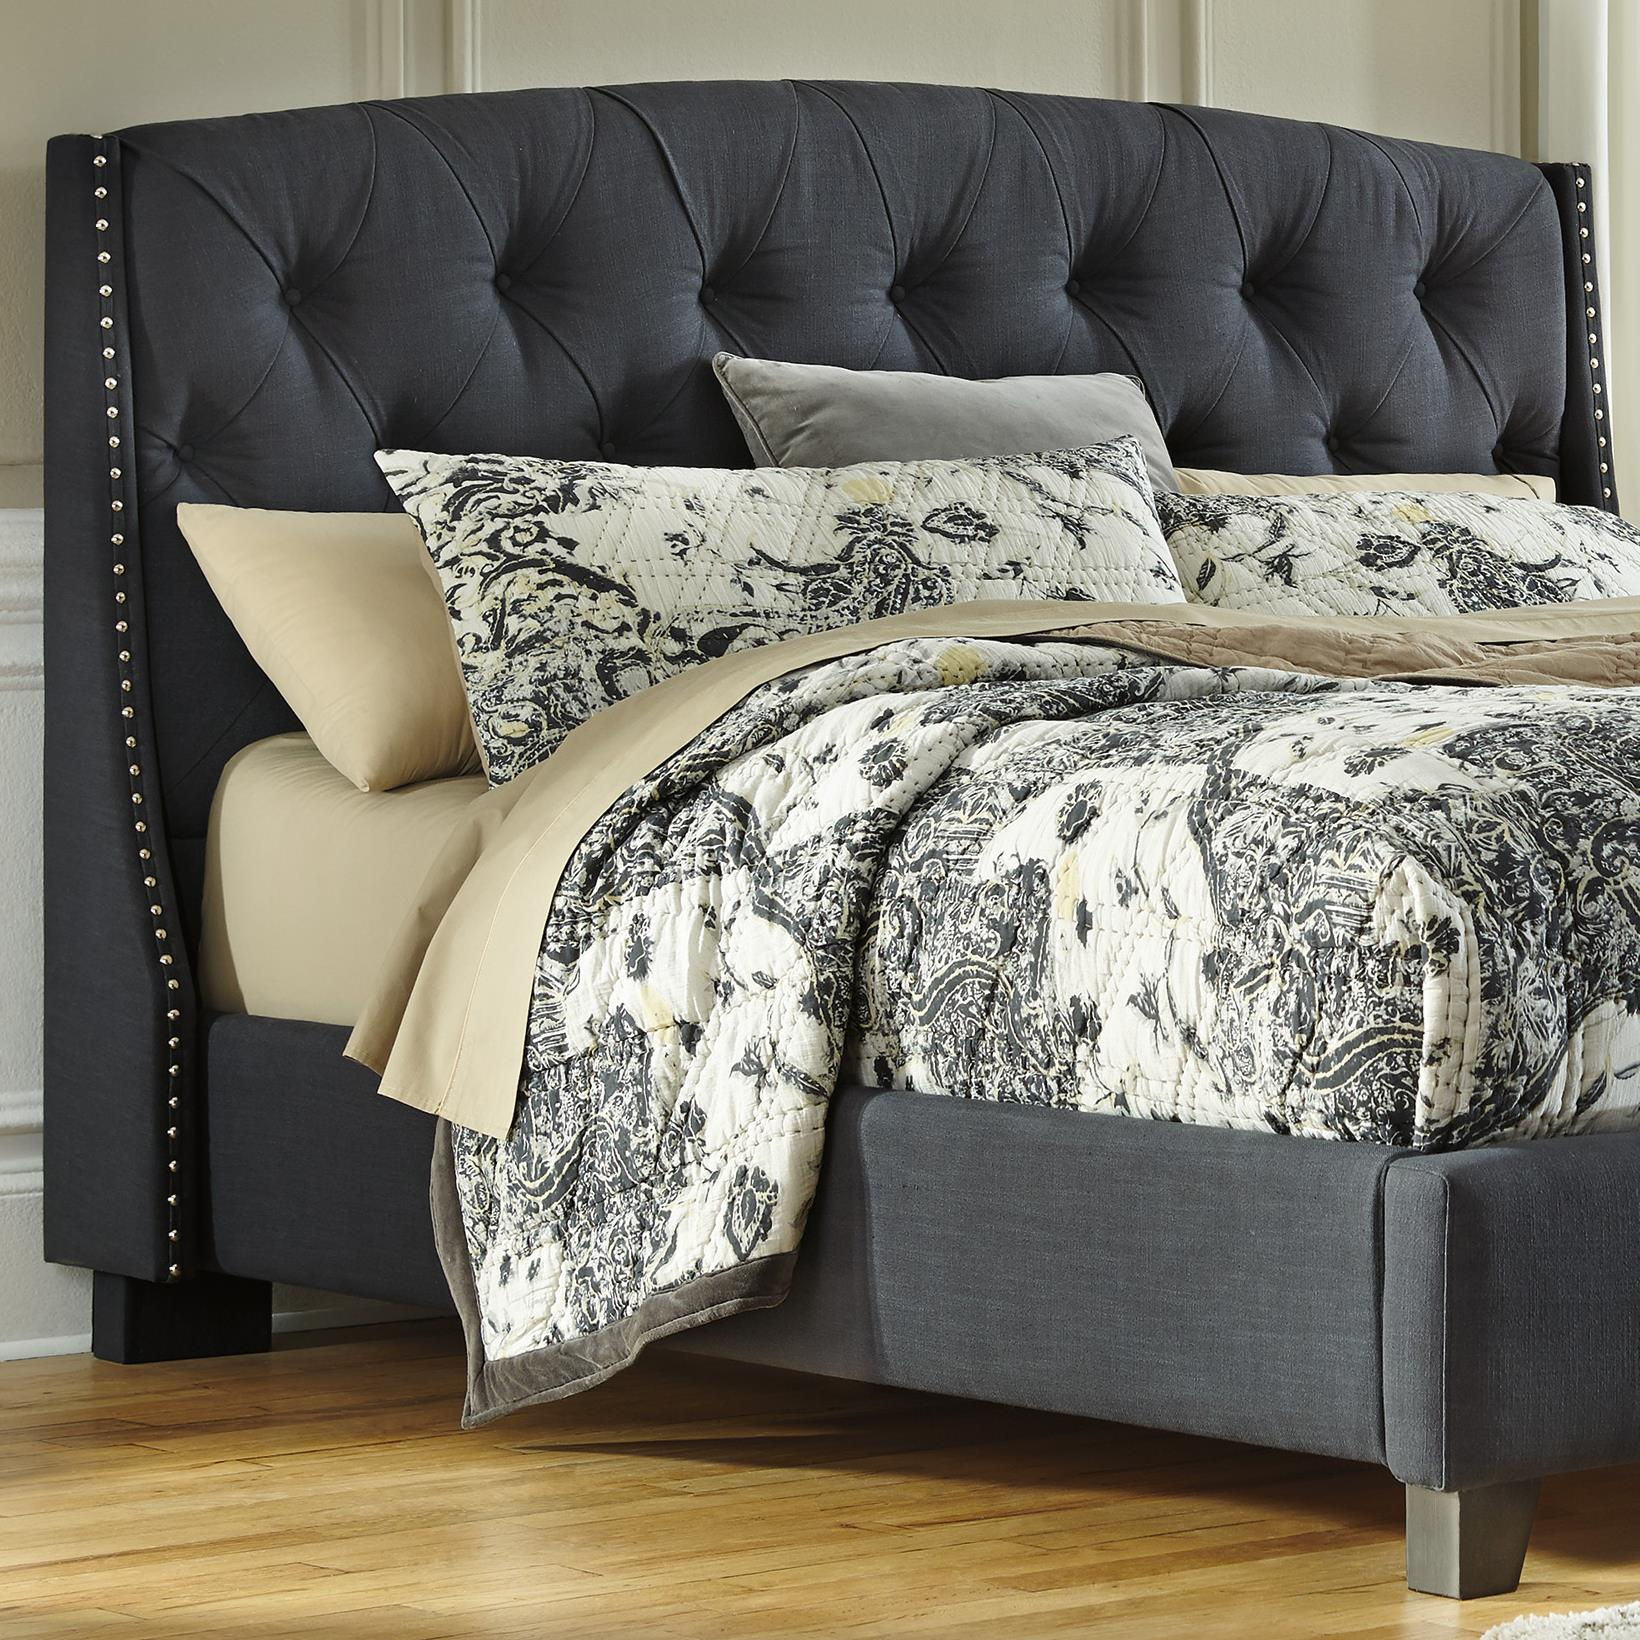 Signature design by ashley kasidon b600 558 king california king upholstered headboard in dark for Bedroom sets with upholstered headboards